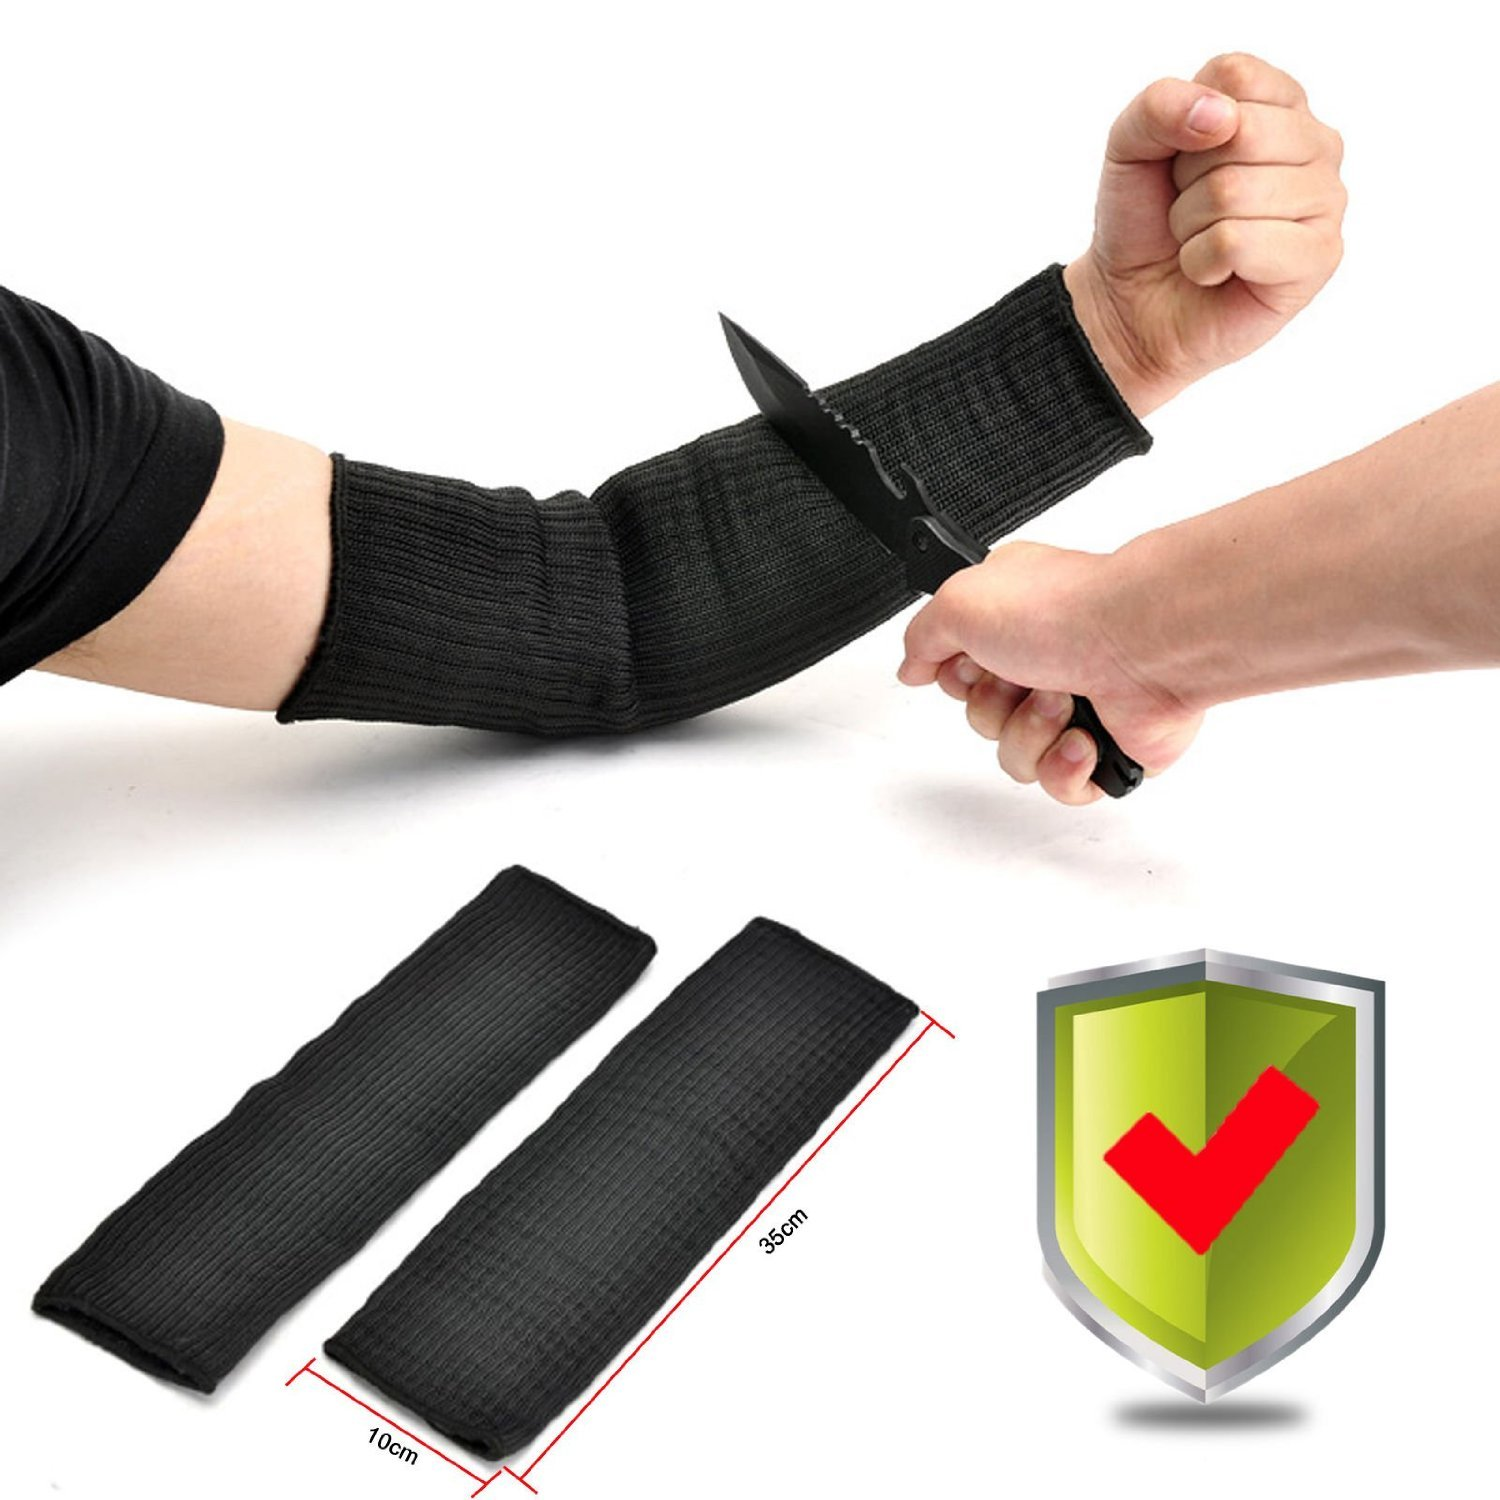 Protective Arm Sleeves Yosoo 1 Pair Steel Wire Tactical Cut Proof Armband Arm Guard Bracers Anti-Cut Burn Resistant Sleeves, Anti Abrasion Safety